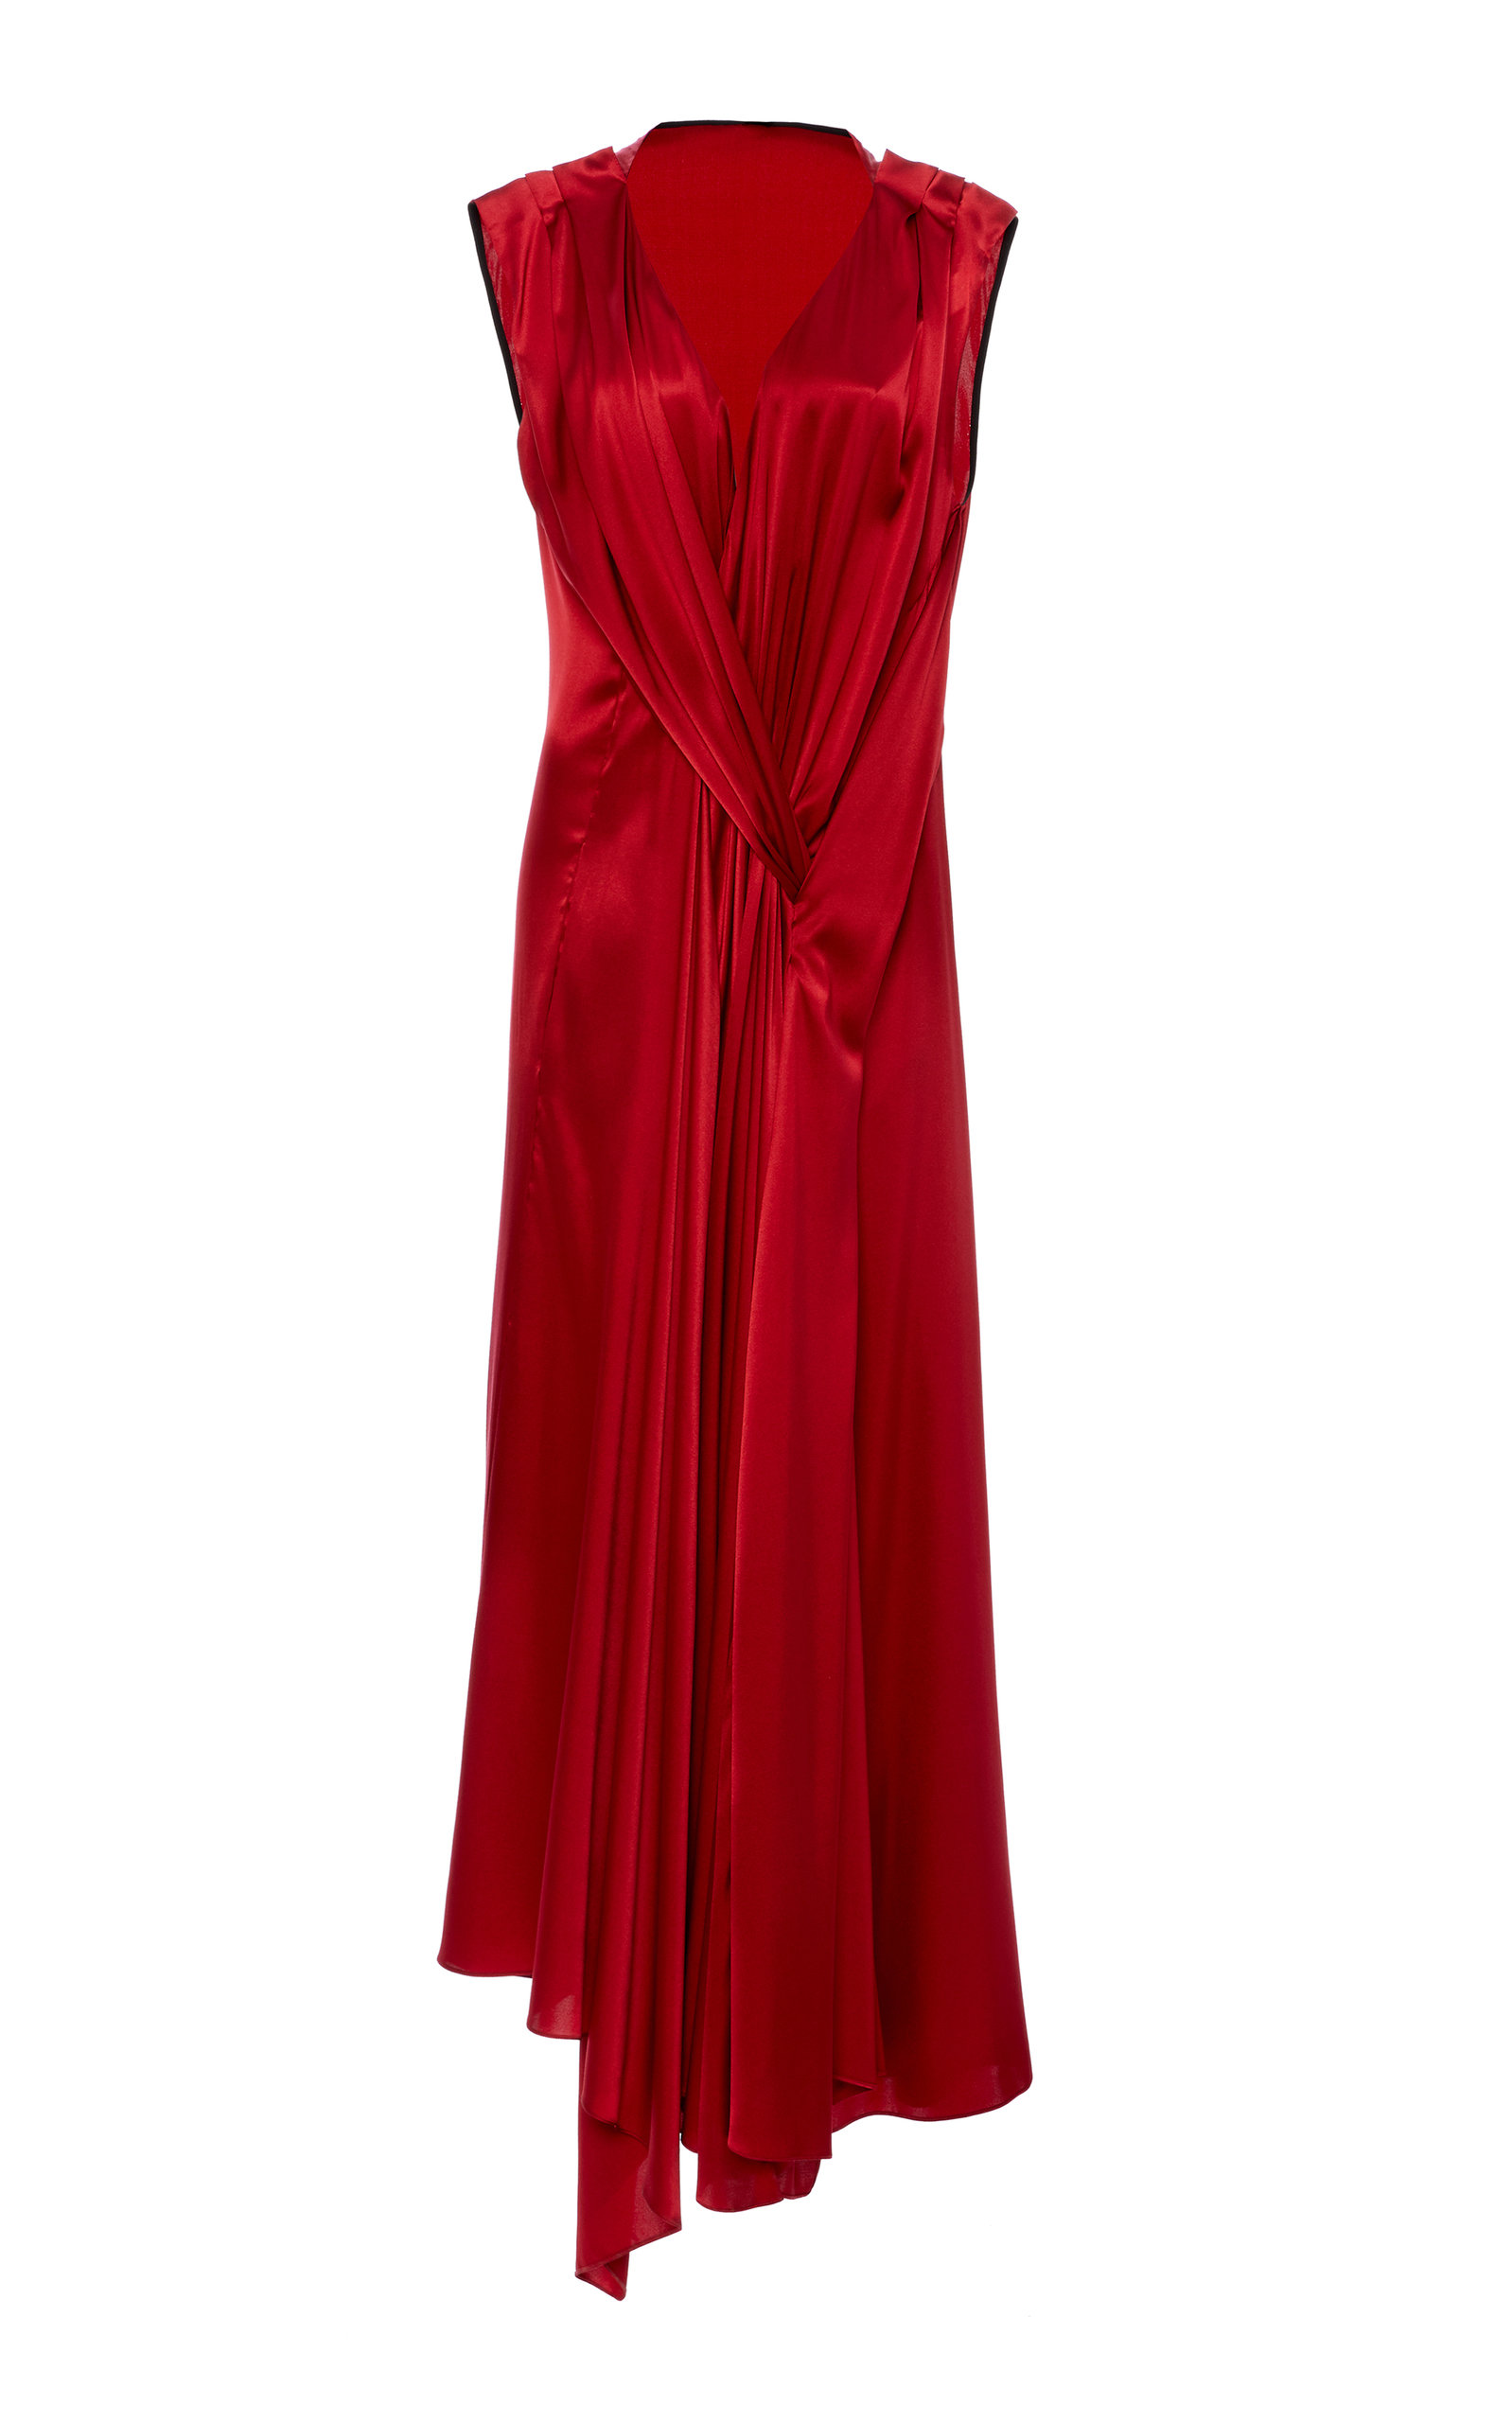 Buy Petar Petrov Aria Asymmetric Draped Silk-Satin Midi Dress online, shop Petar Petrov at the best price